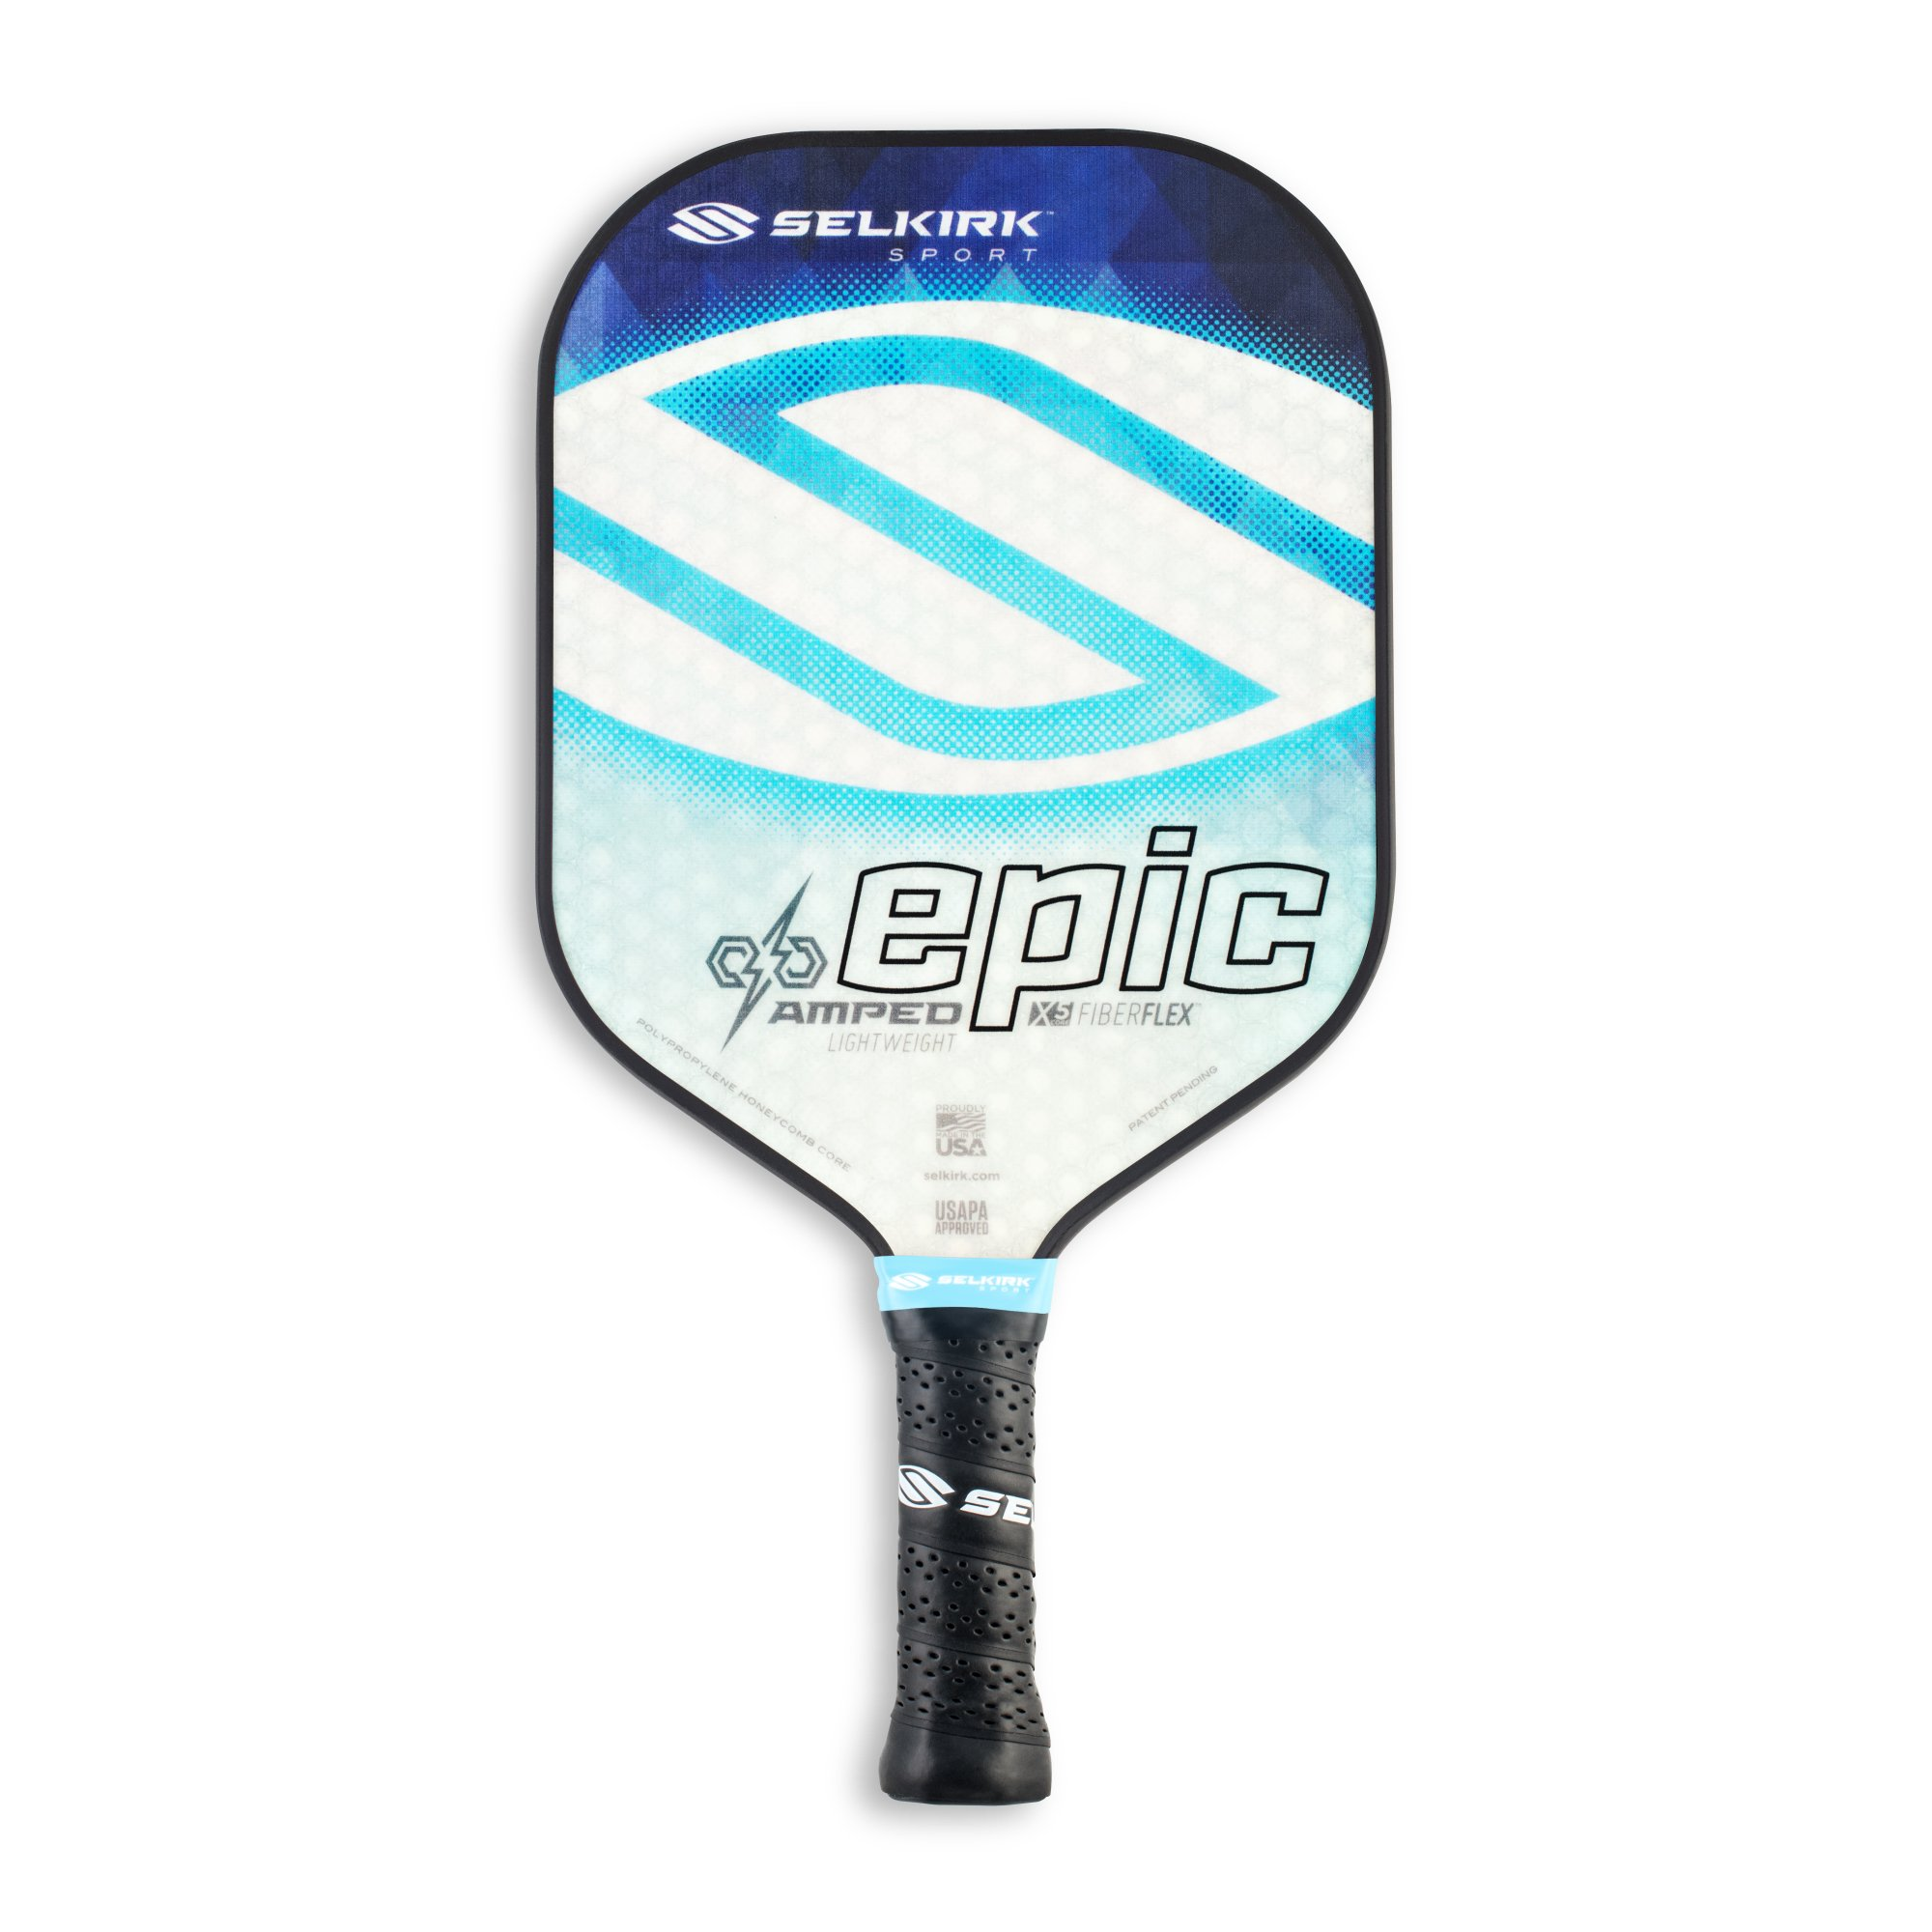 Selkirk Amped Pickleball Paddle - USAPA Approved - X5 Polypropylene Core - FiberFlex Fiberglass Face - 5 Sizes: Epic, S2, Omni, Maxima, and INVIKTA (Epic Lightweight - Sapphire Blue) by Selkirk Sport